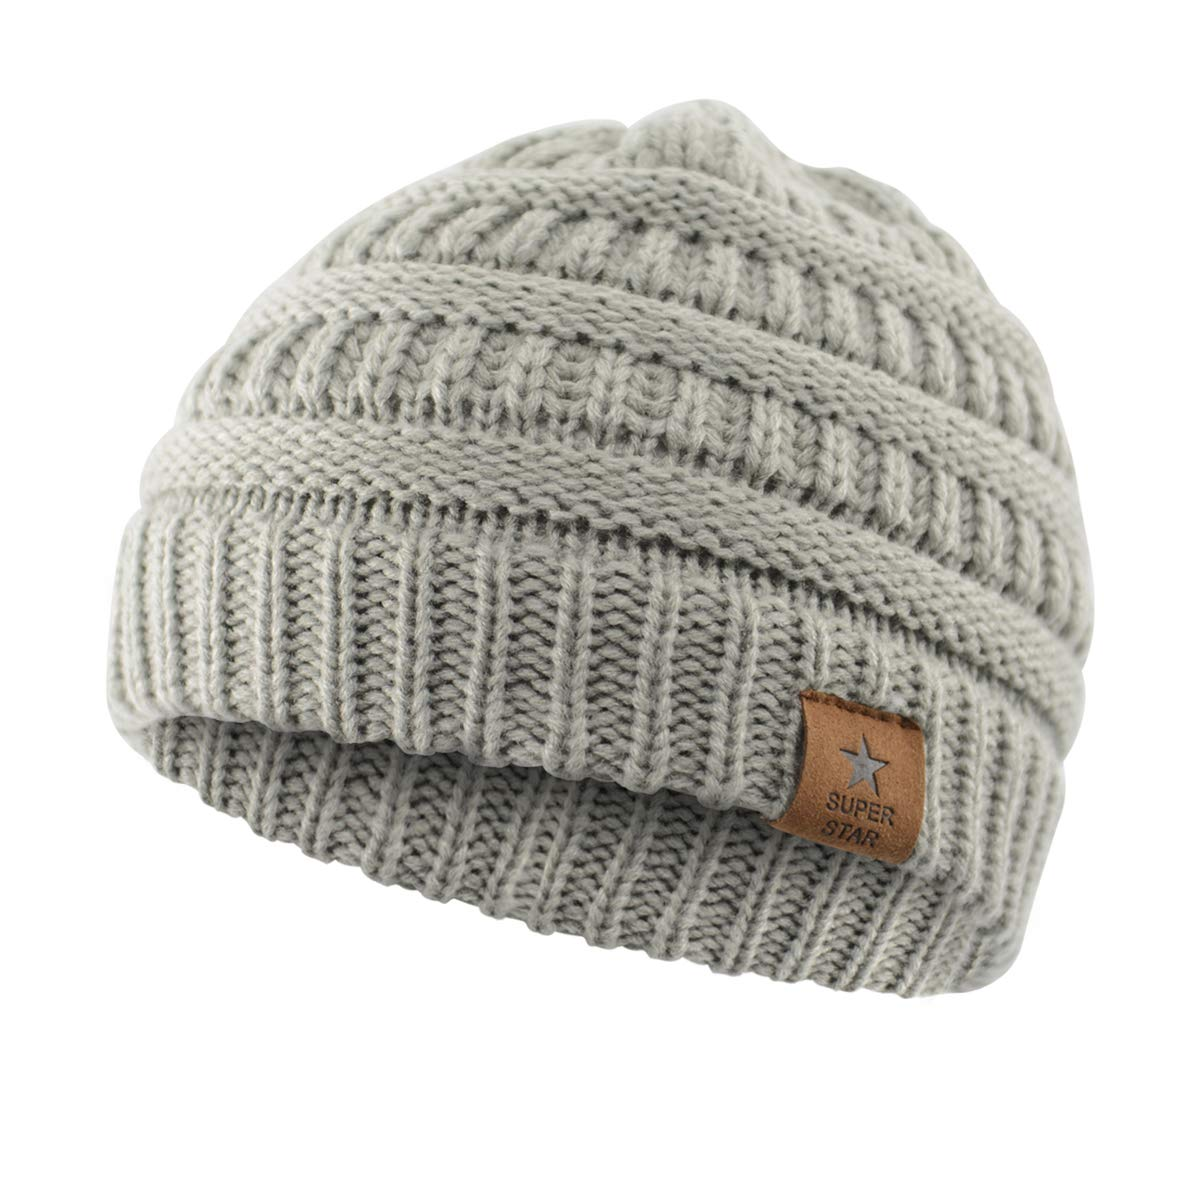 Amazon.com  Durio Soft Warm Infant Toddler Winter Beanies Hats Thick  Knitted Caps Baby Beanies for Boys Girls Babies A 1 Pack Light Grey   Clothing bb6b5e739